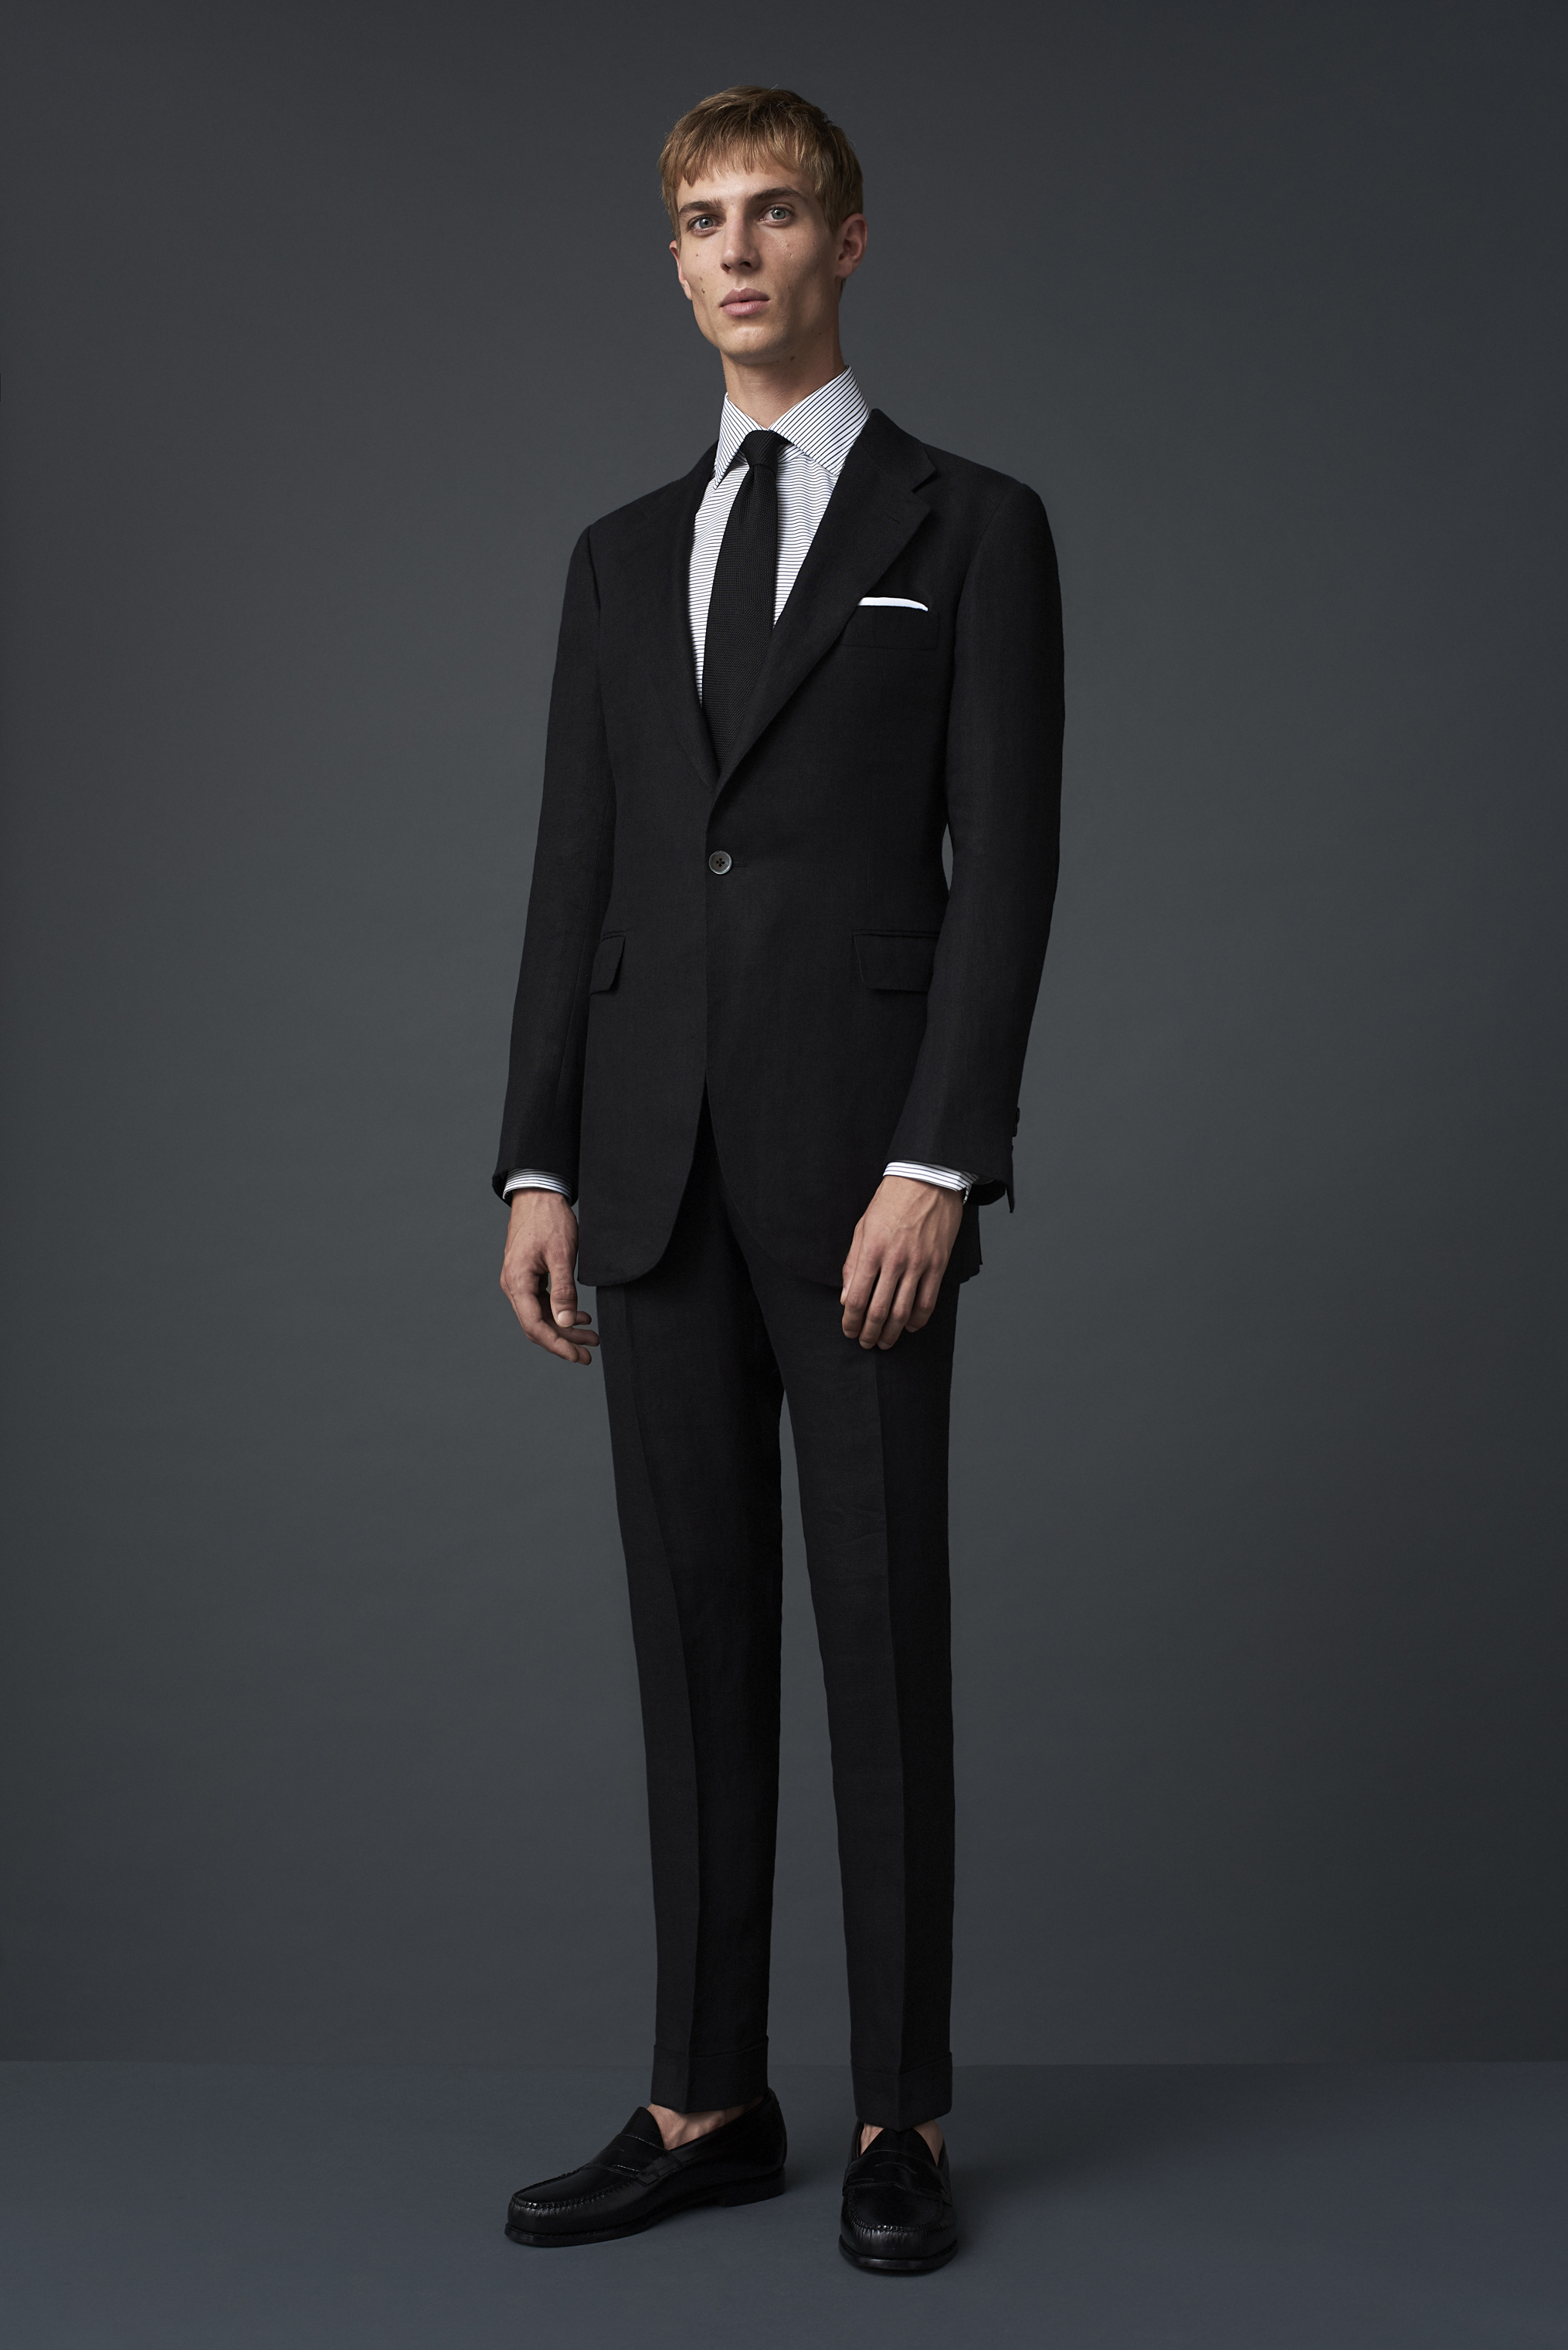 Black Irish twill linen suit with a one button notch lapel. Worn with a horizontal striped Egyptian cotton shirt and a black grenadine silk tie, made in Como.